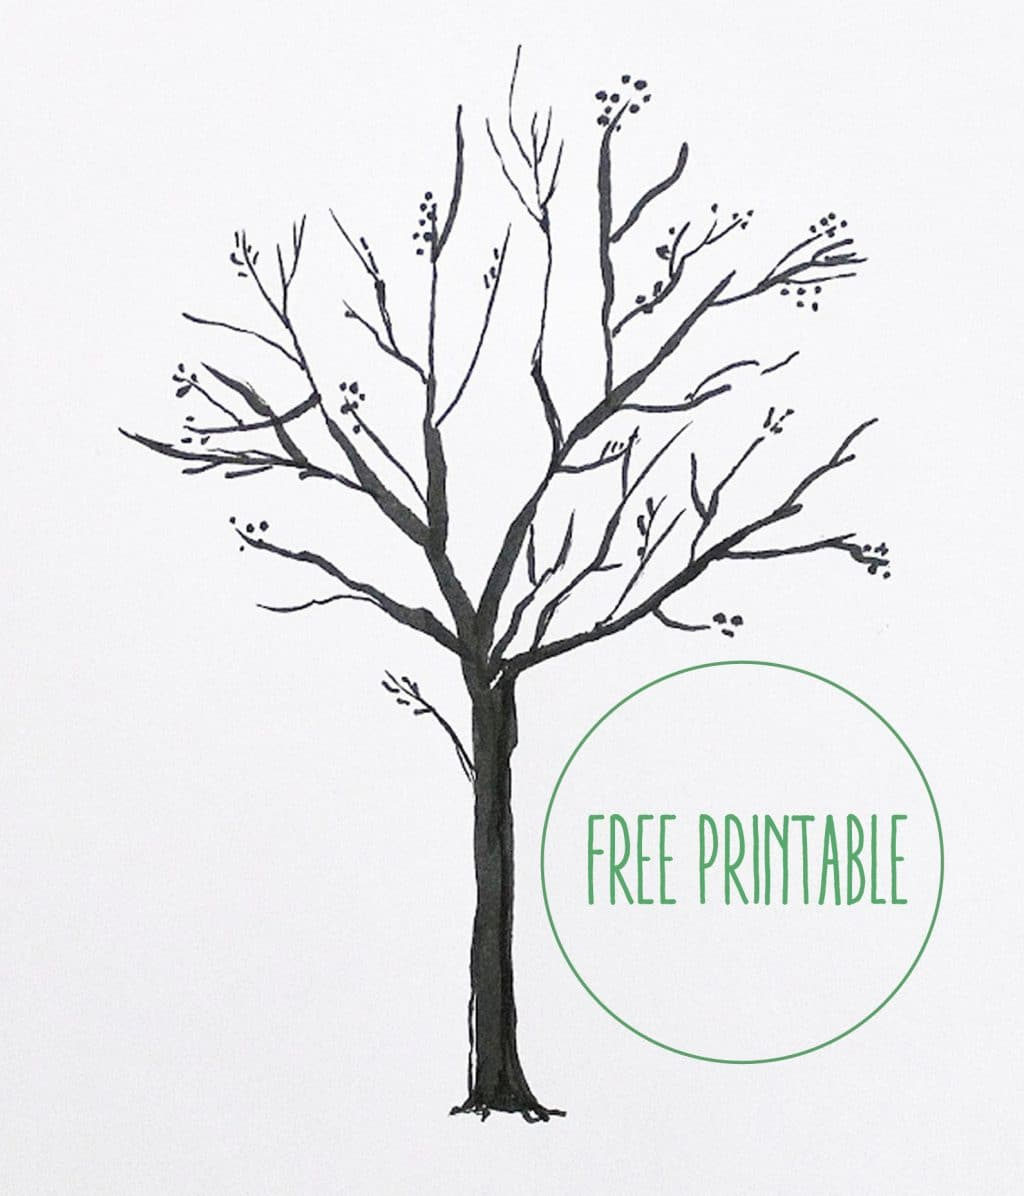 picture regarding Free Printable Tree known as No cost Printable! Blank Relatives Tree - Chris Enjoys Julia